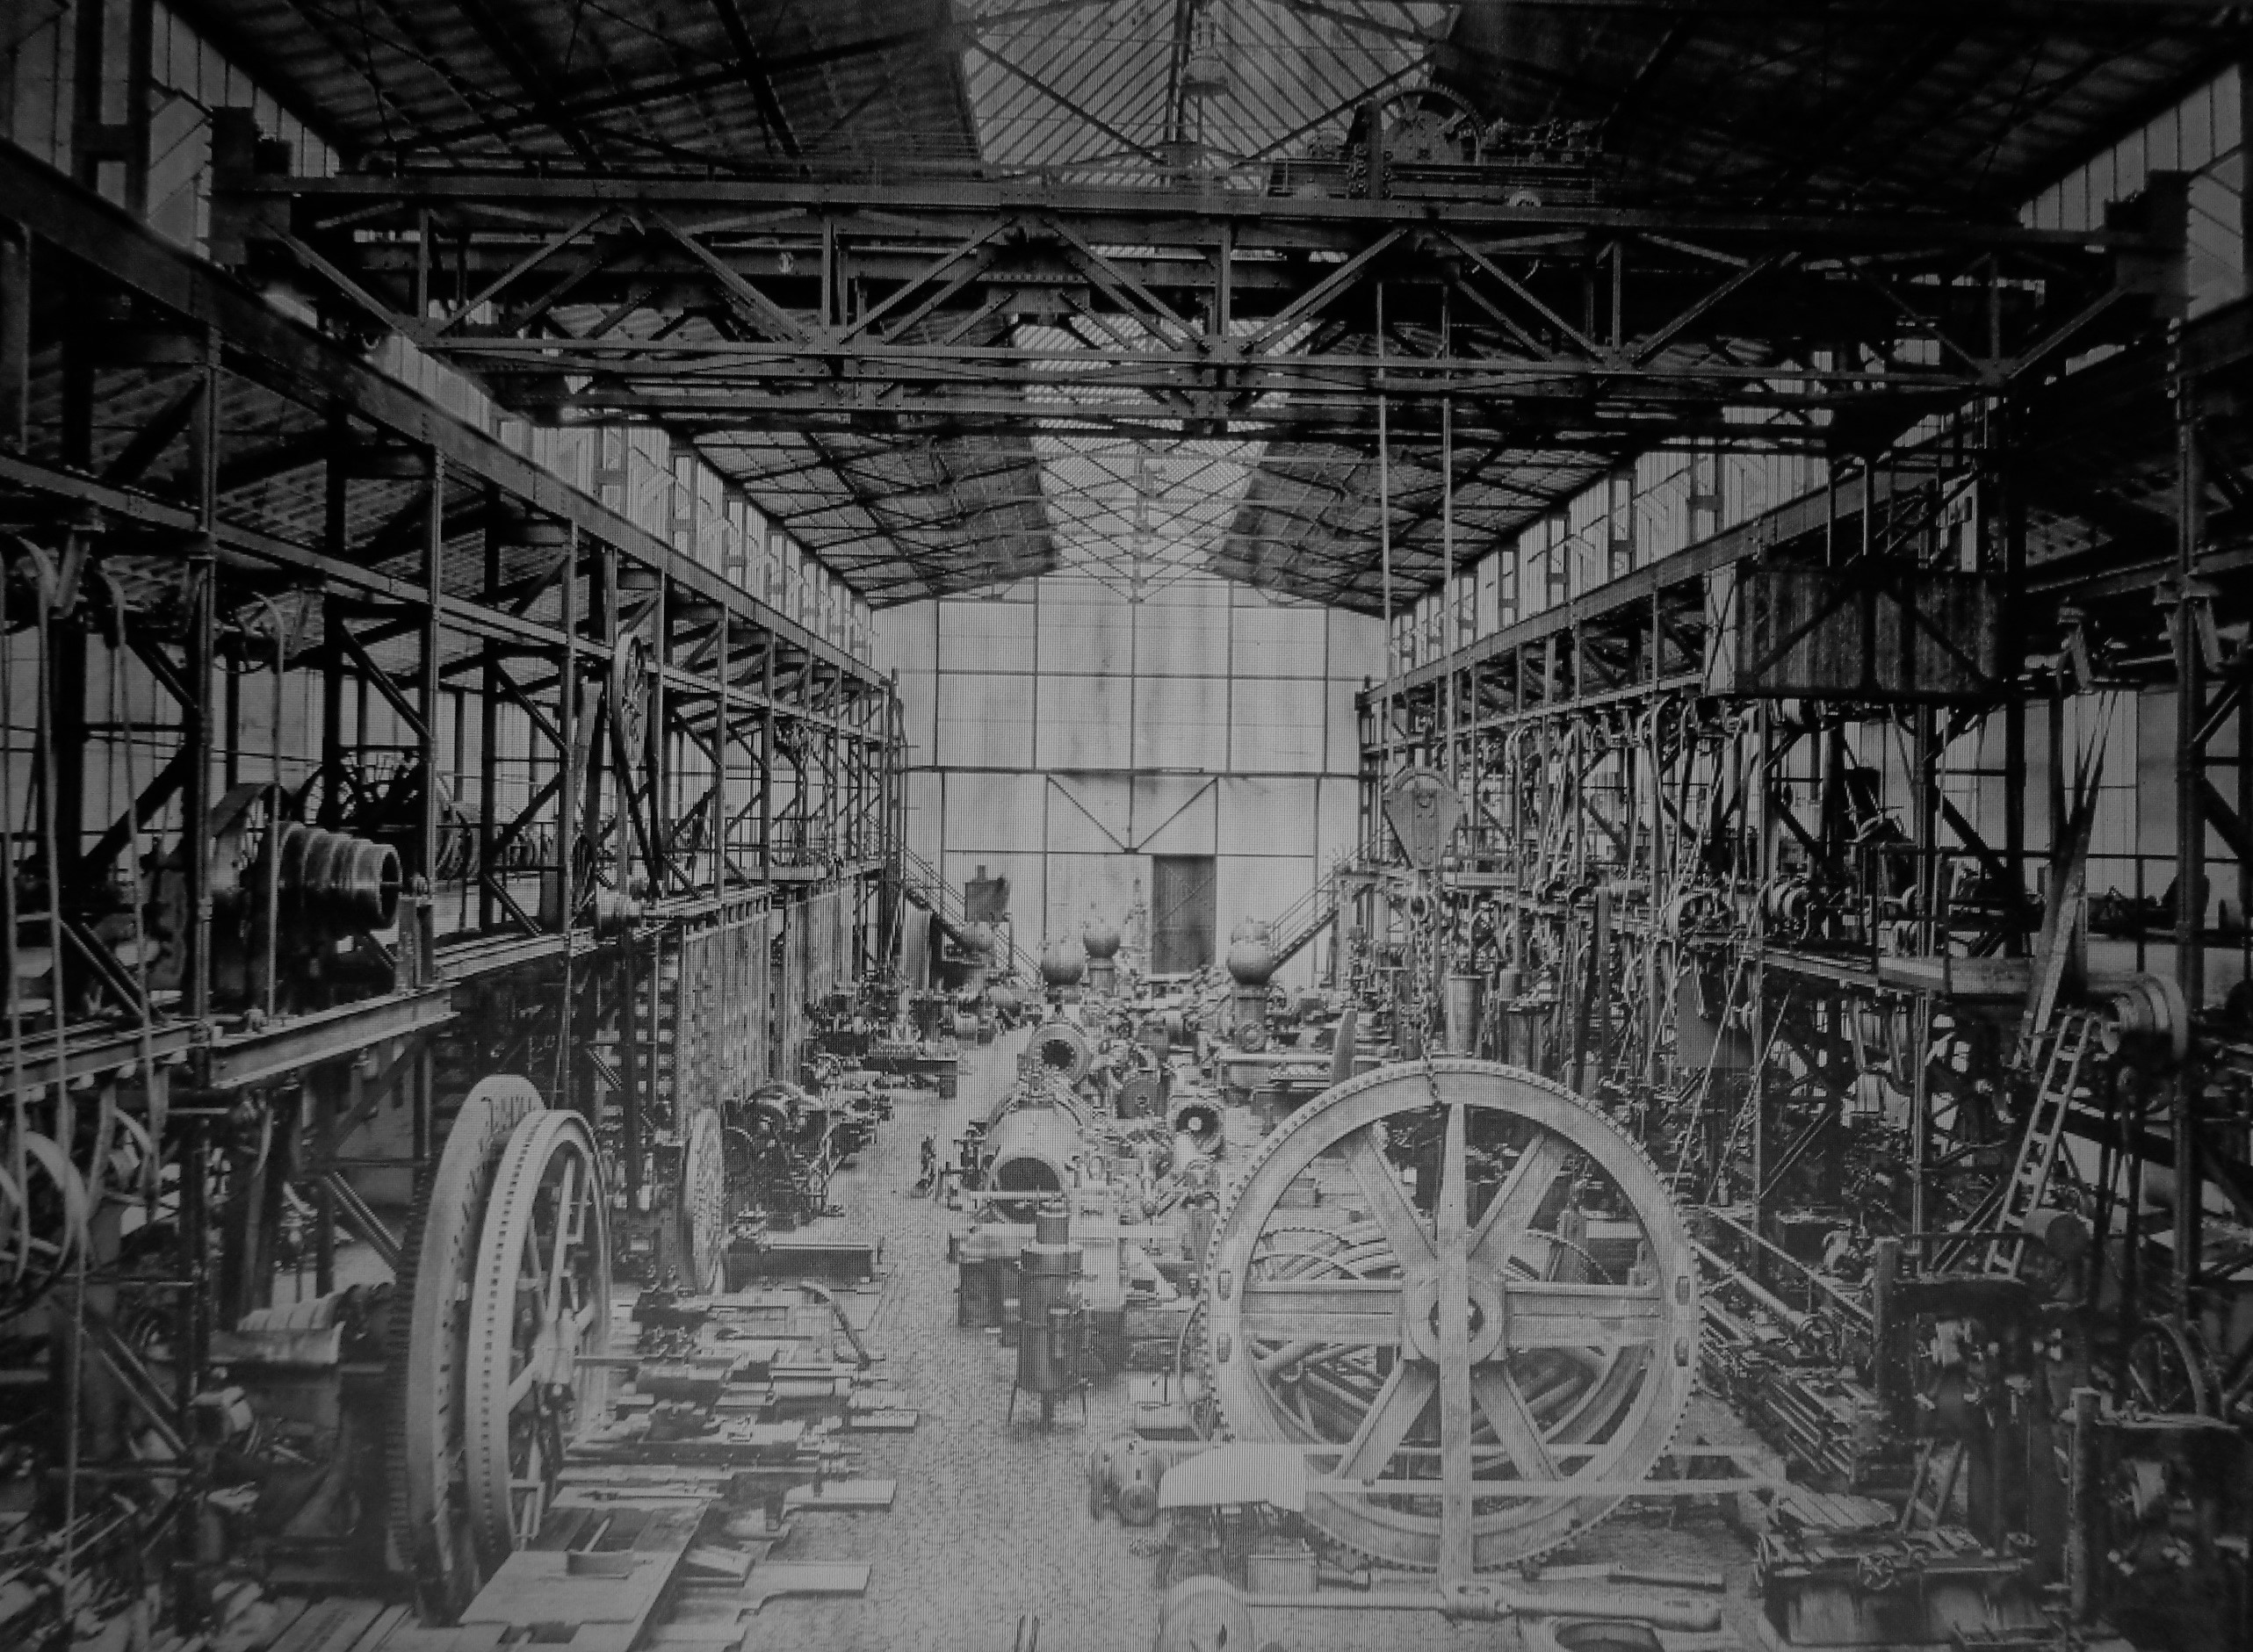 Machinefabriek (6)